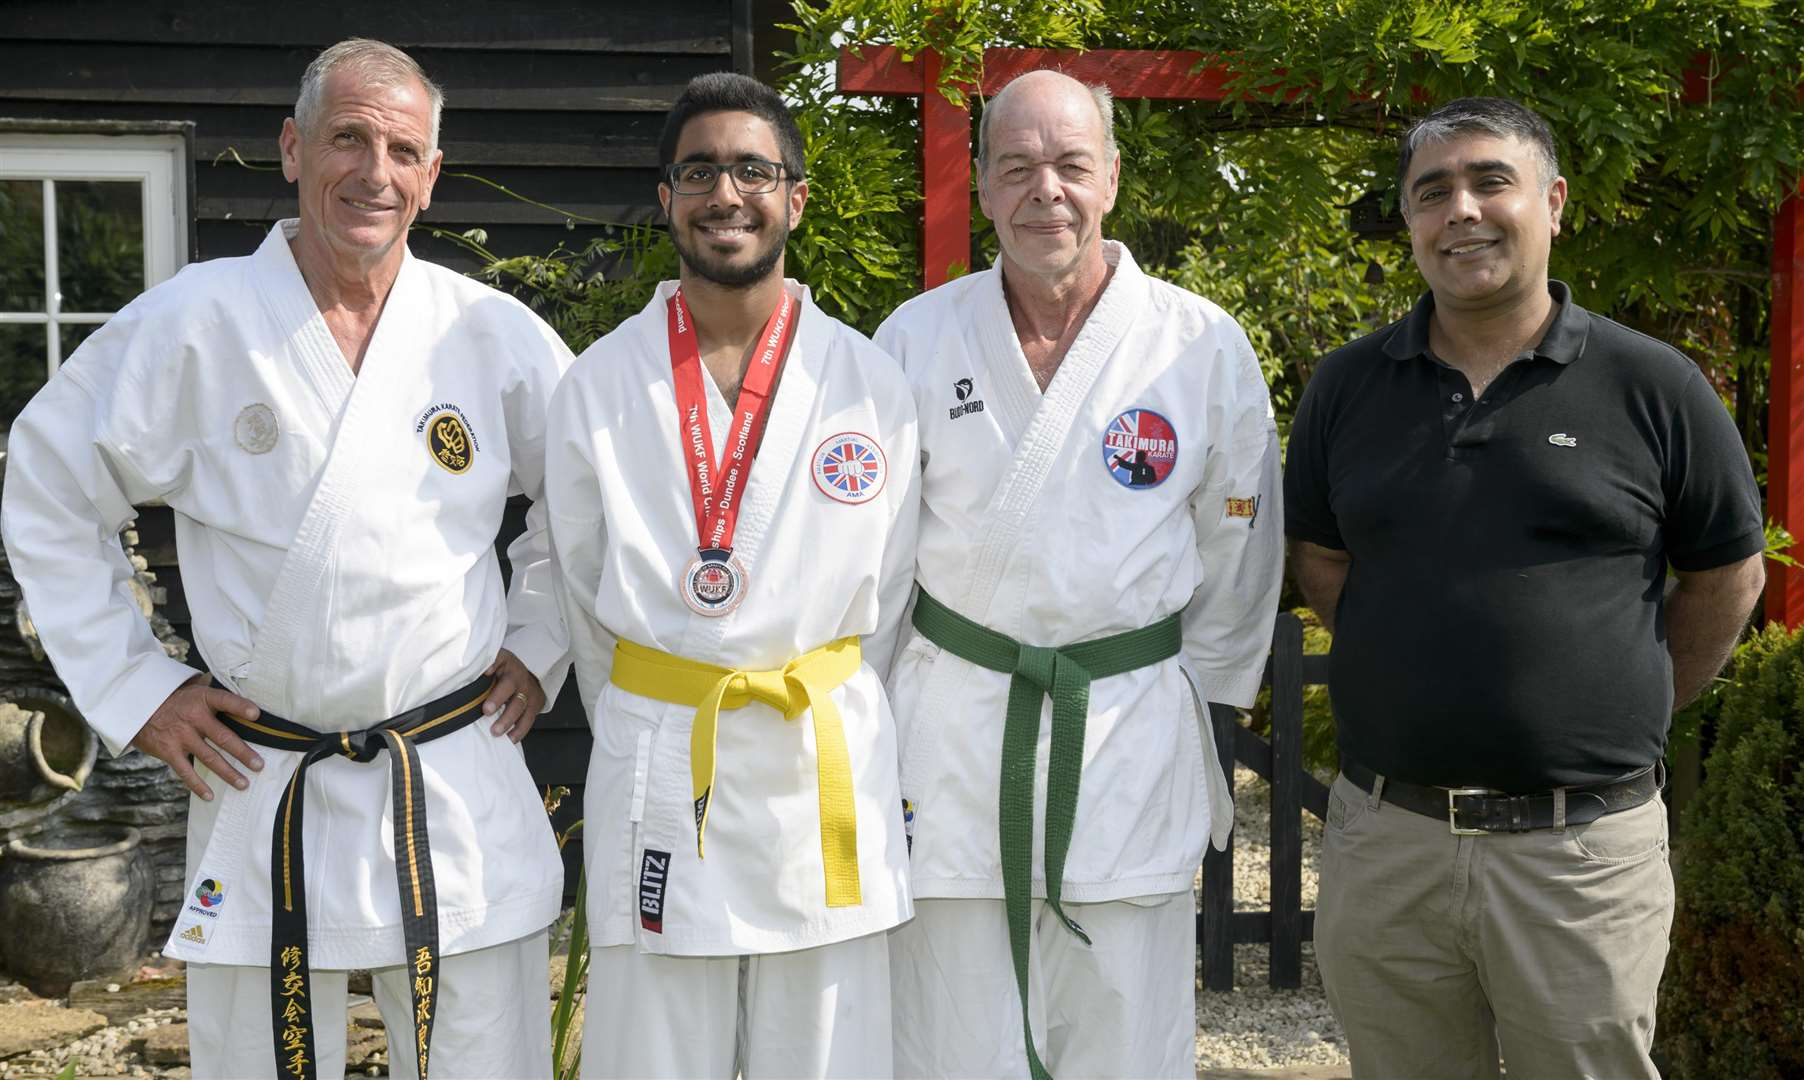 From left, Archie Grassom, Ishar Sandhu, Barry Rose and Ishar's dad, Bal Picture: Andy Payton